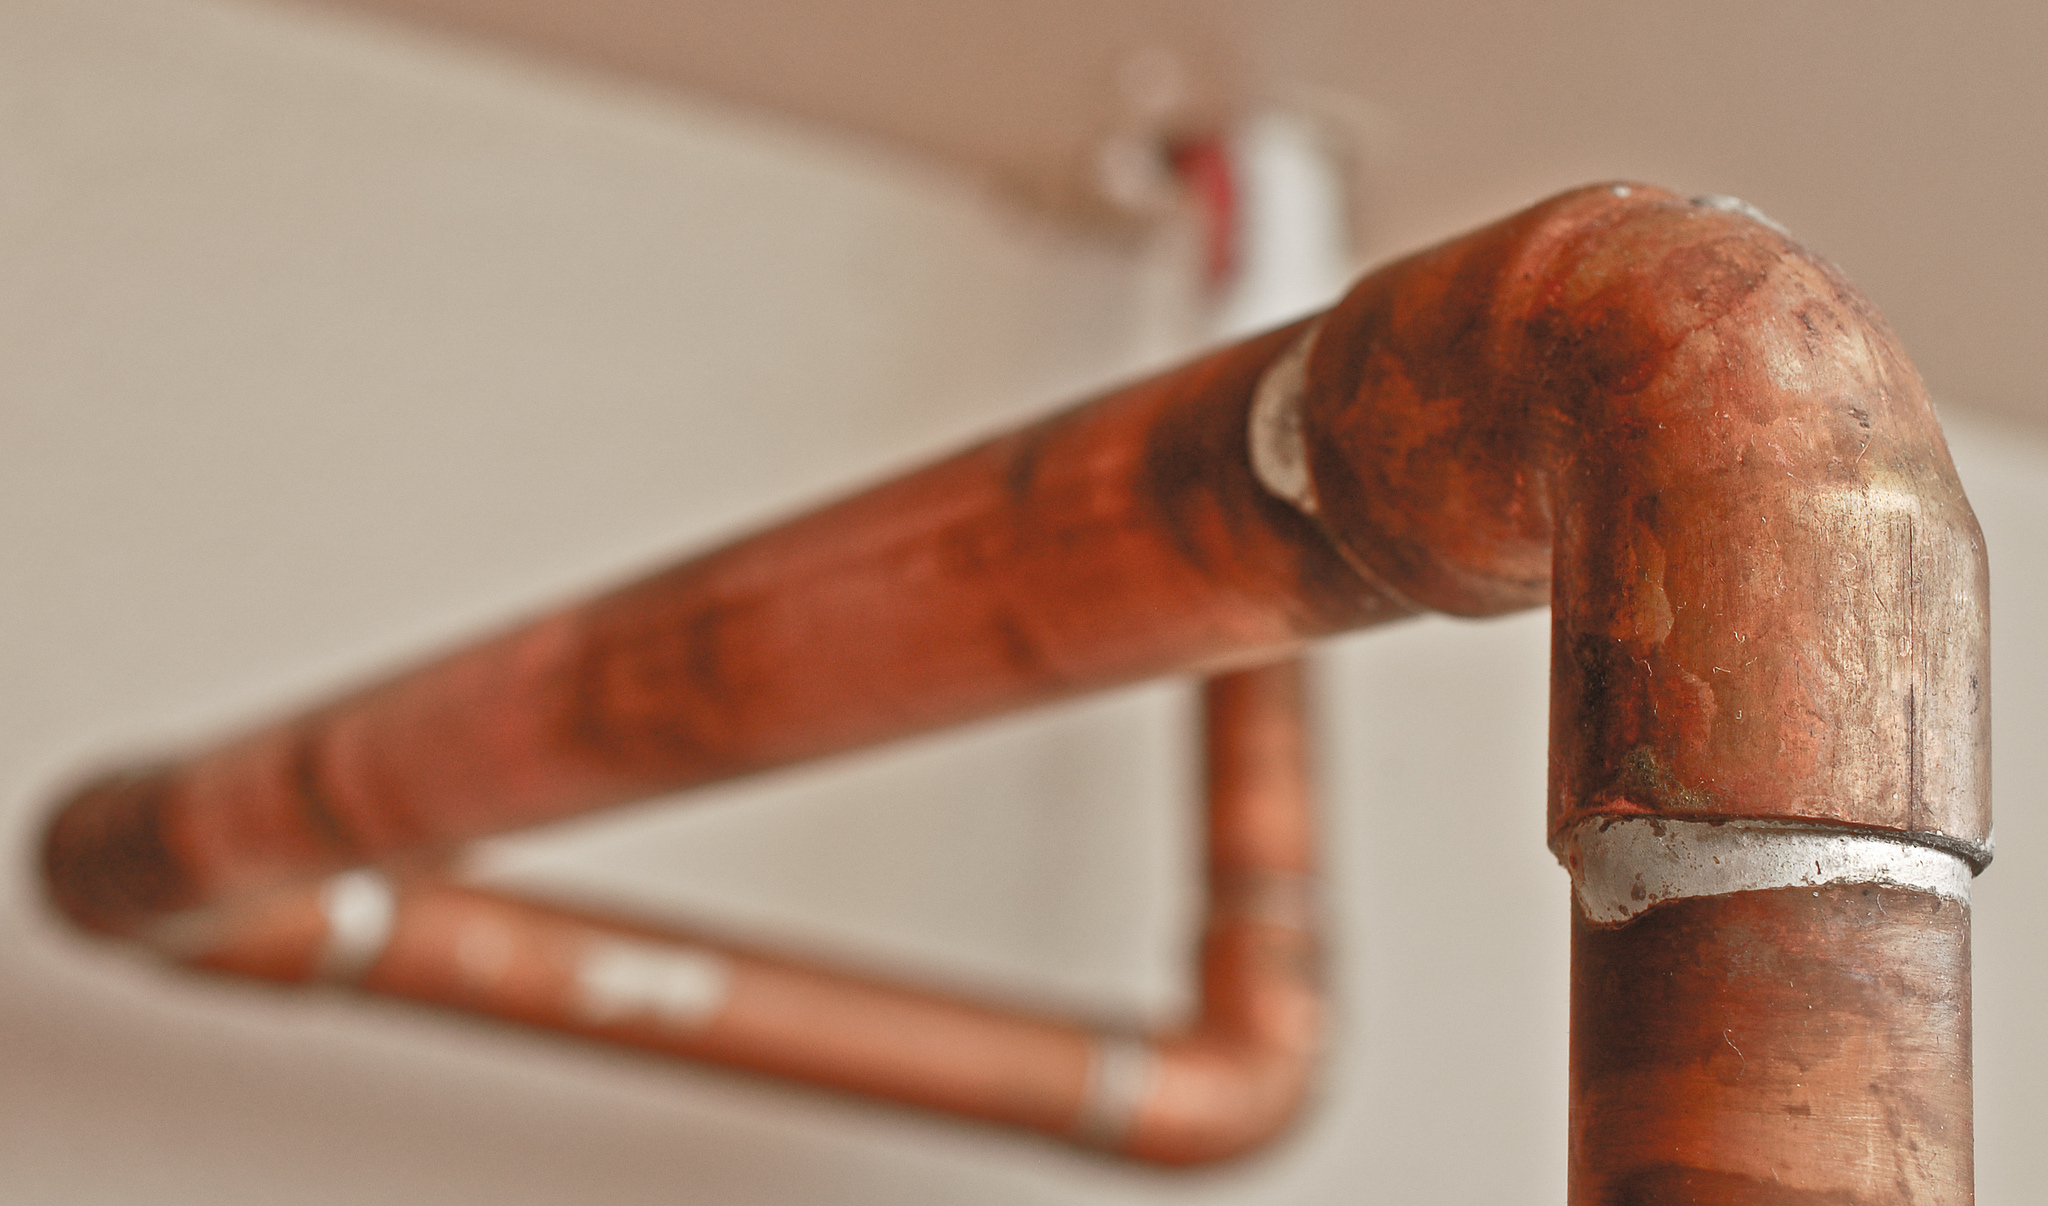 Supplier And Manufacturer Of Copper Piping Liable For Failure To Meet City's Watermain Sterilization Process